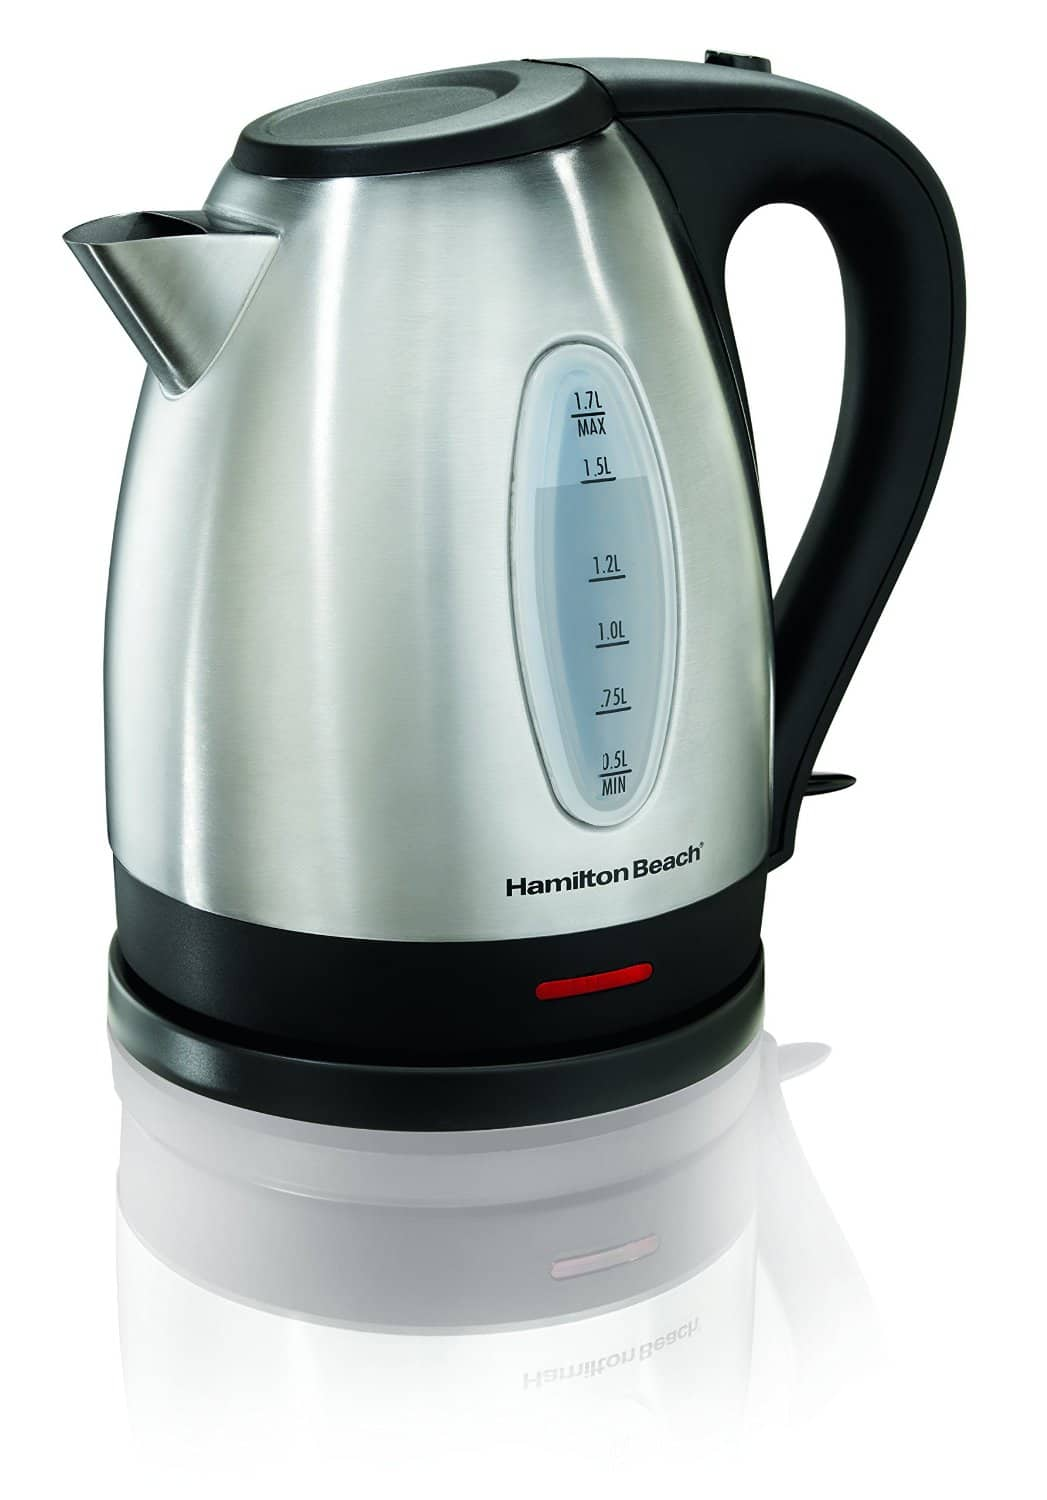 Hamilton Beach 1.7 Liter Stainless Steel Electric Kettle: Used Like New $9.47, Used Very Good $8.91 via Amazon Warehouse